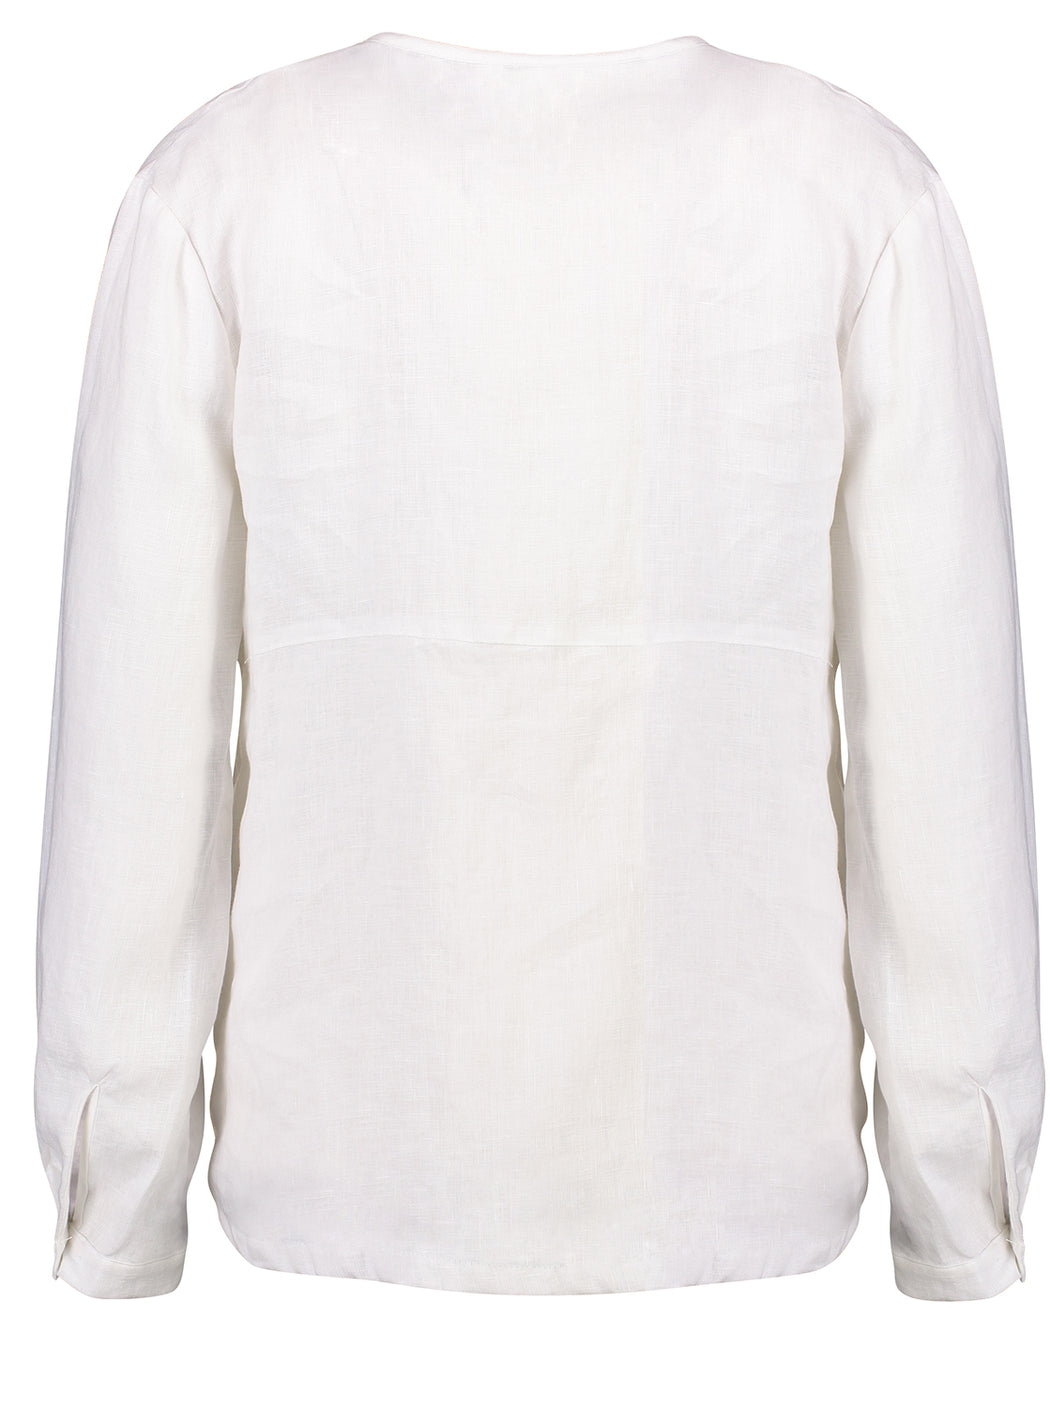 Capital Placket Shirt | White | Linen